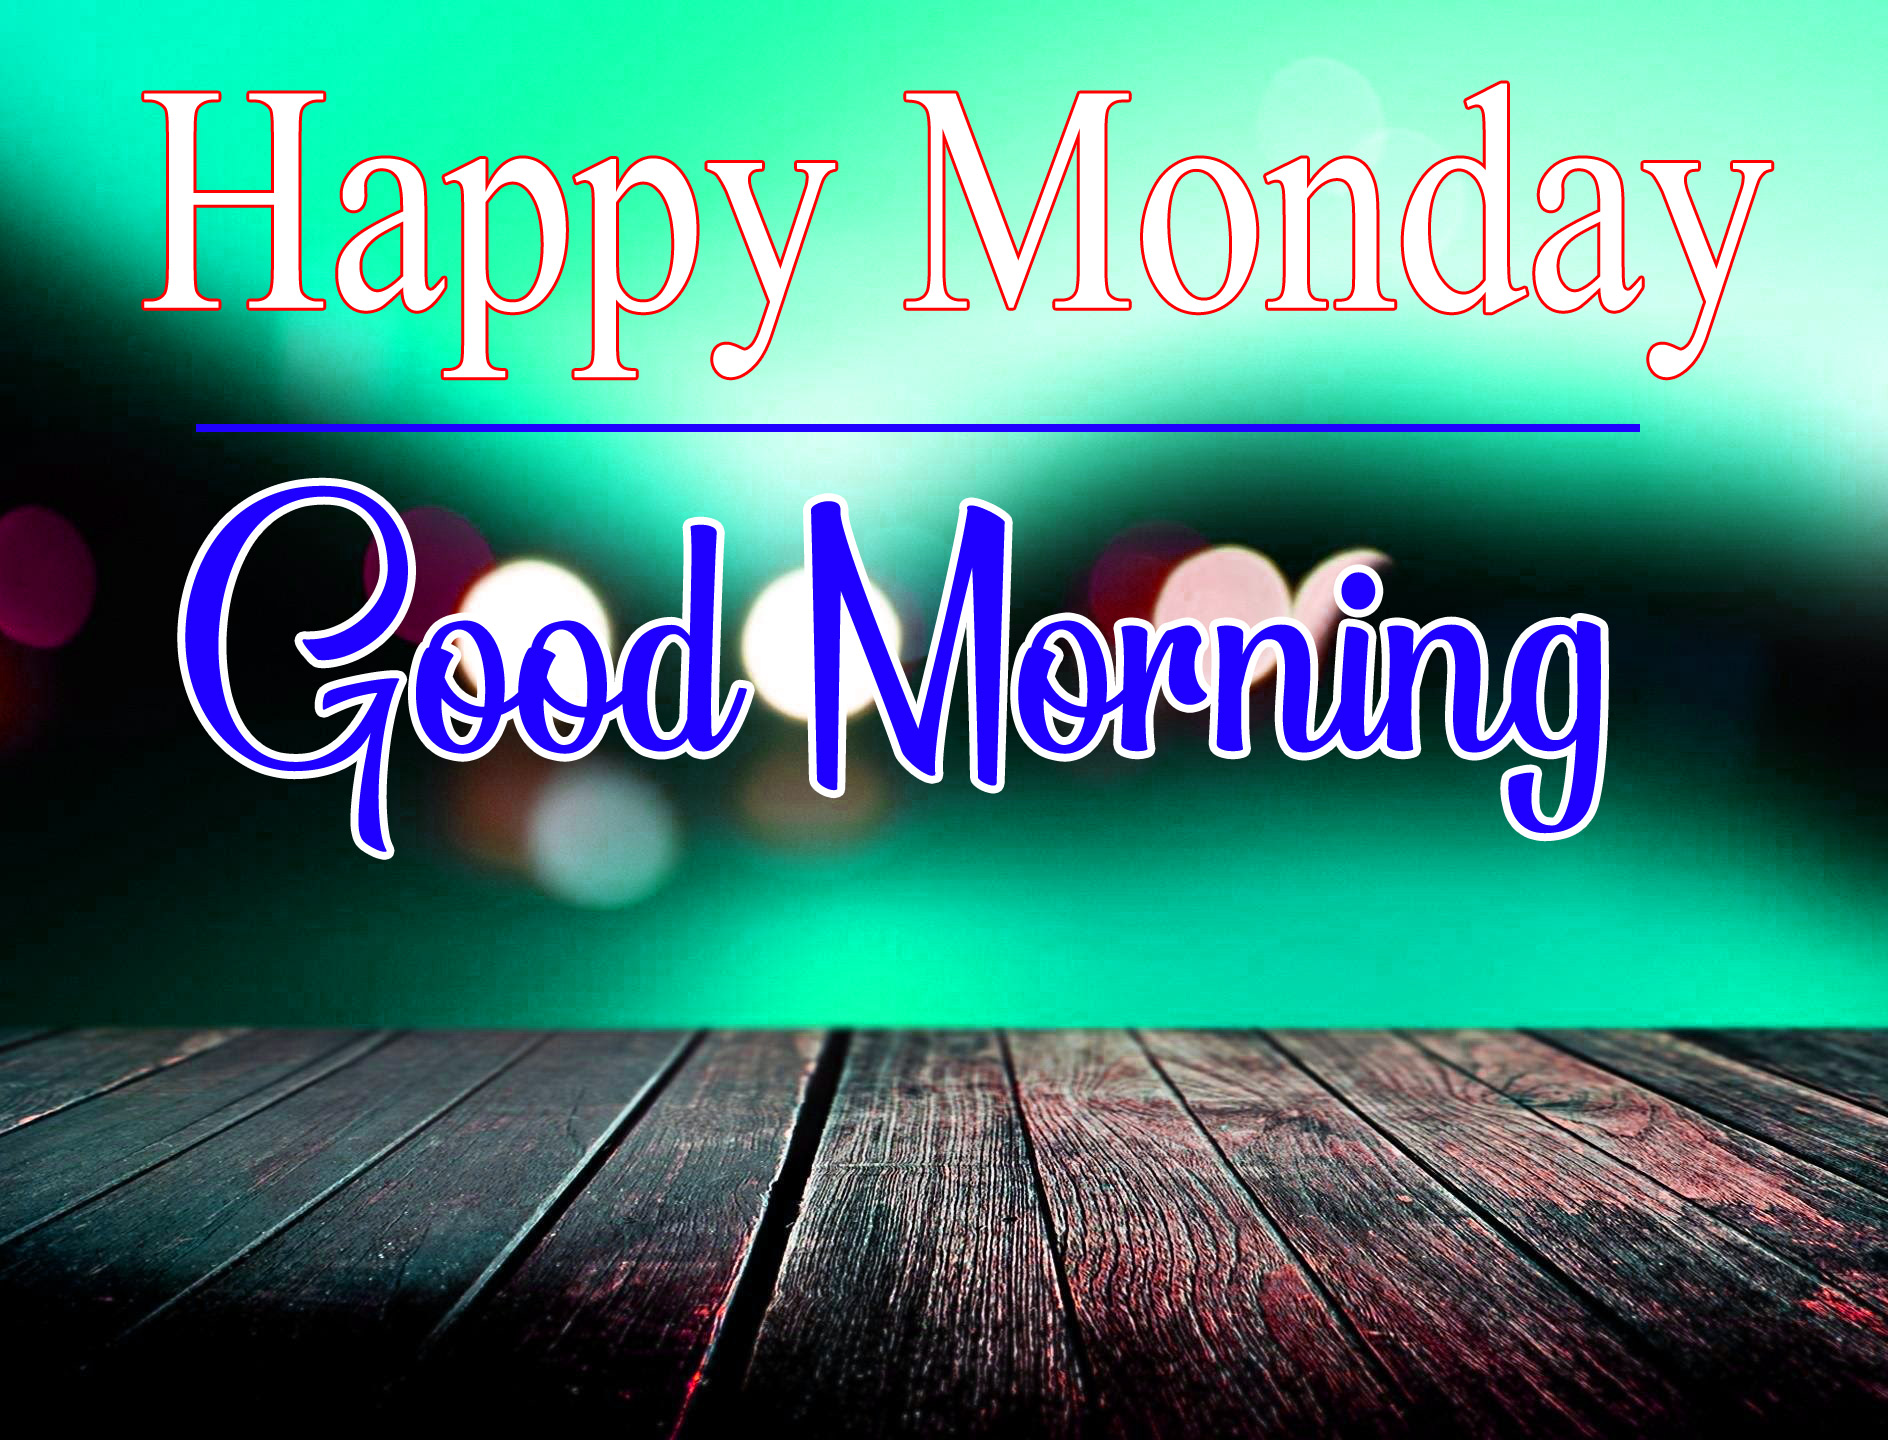 Monday Good Morning Images pics download